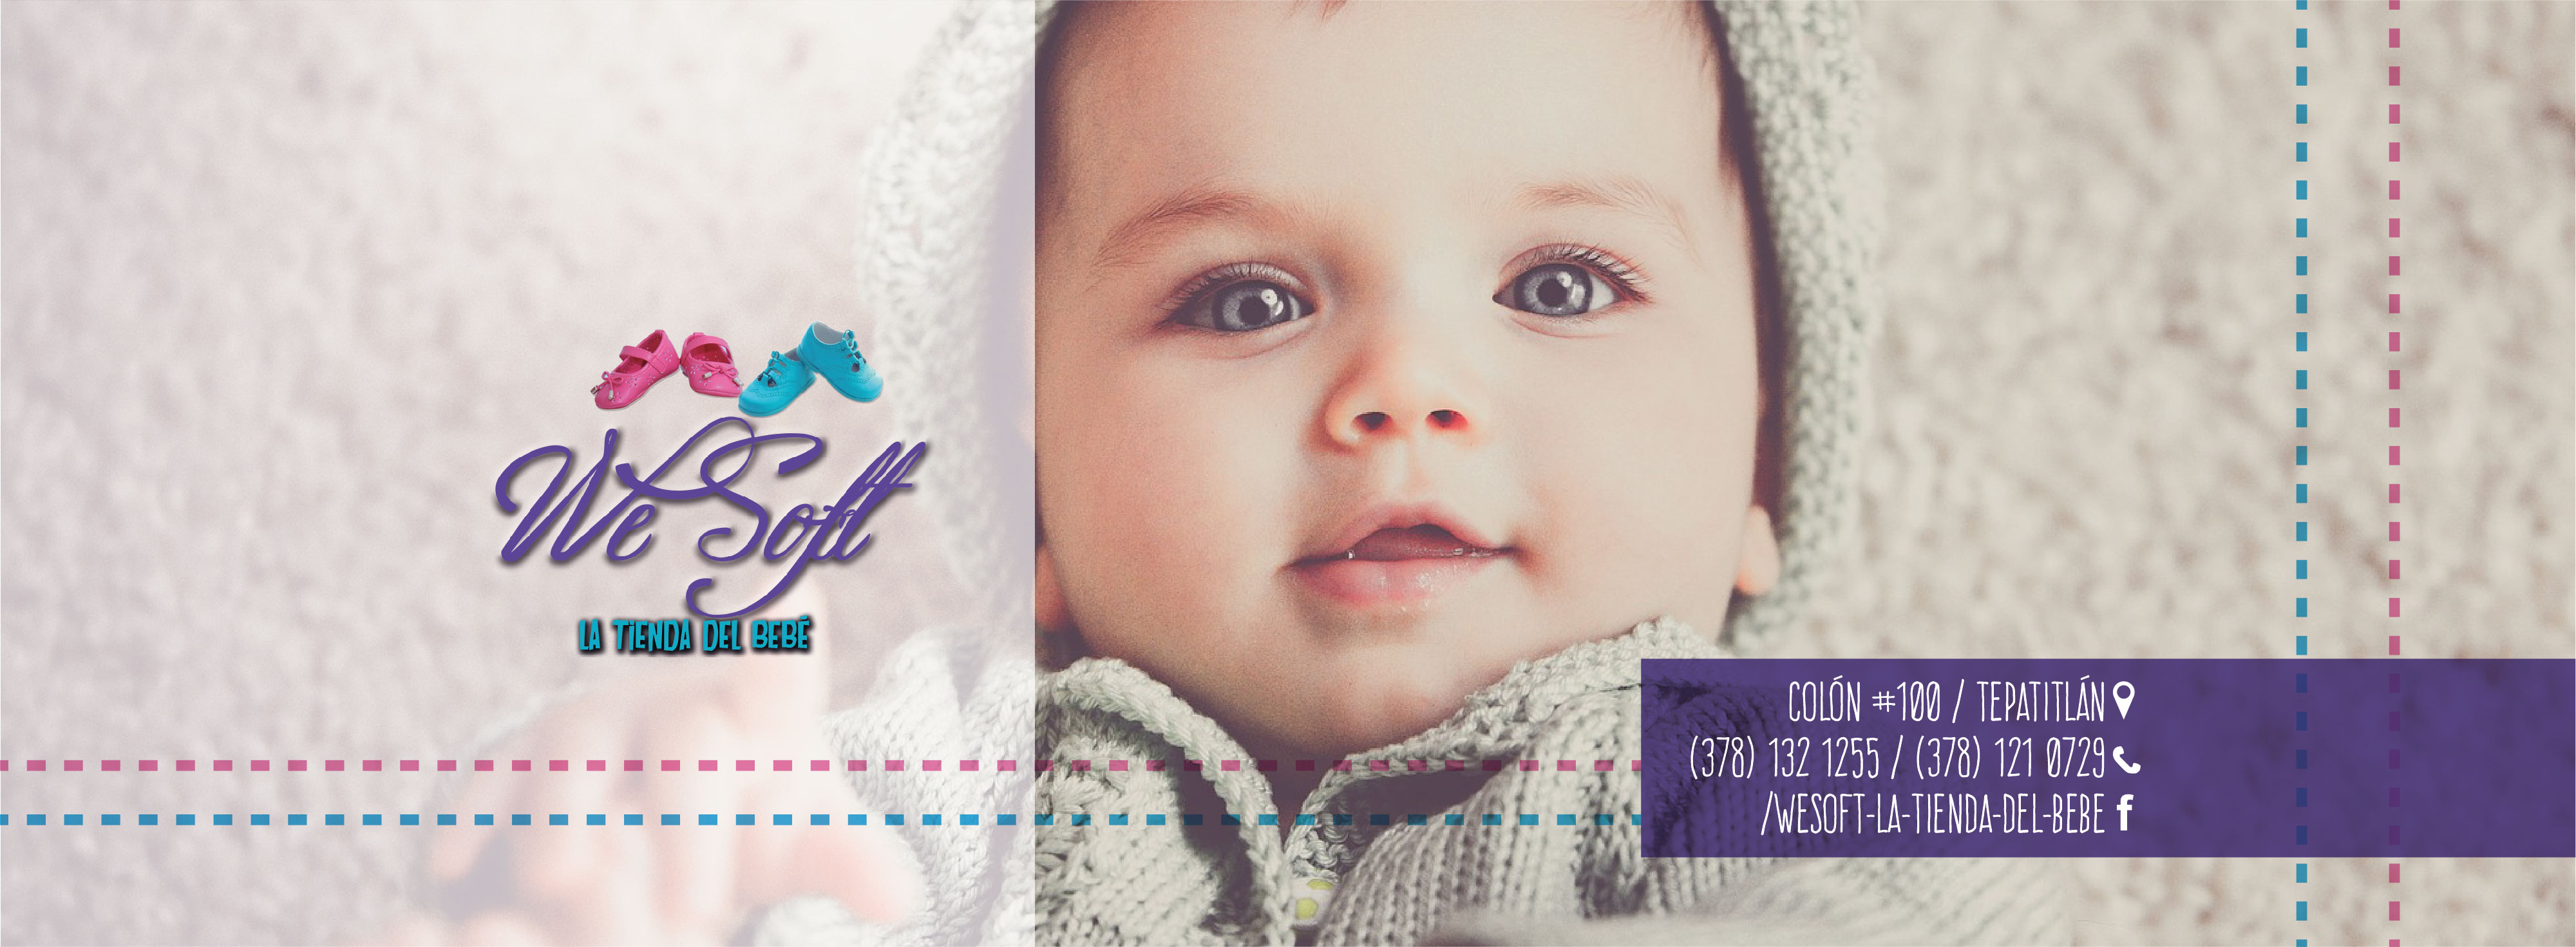 banner-pagina-web-we-soft-01